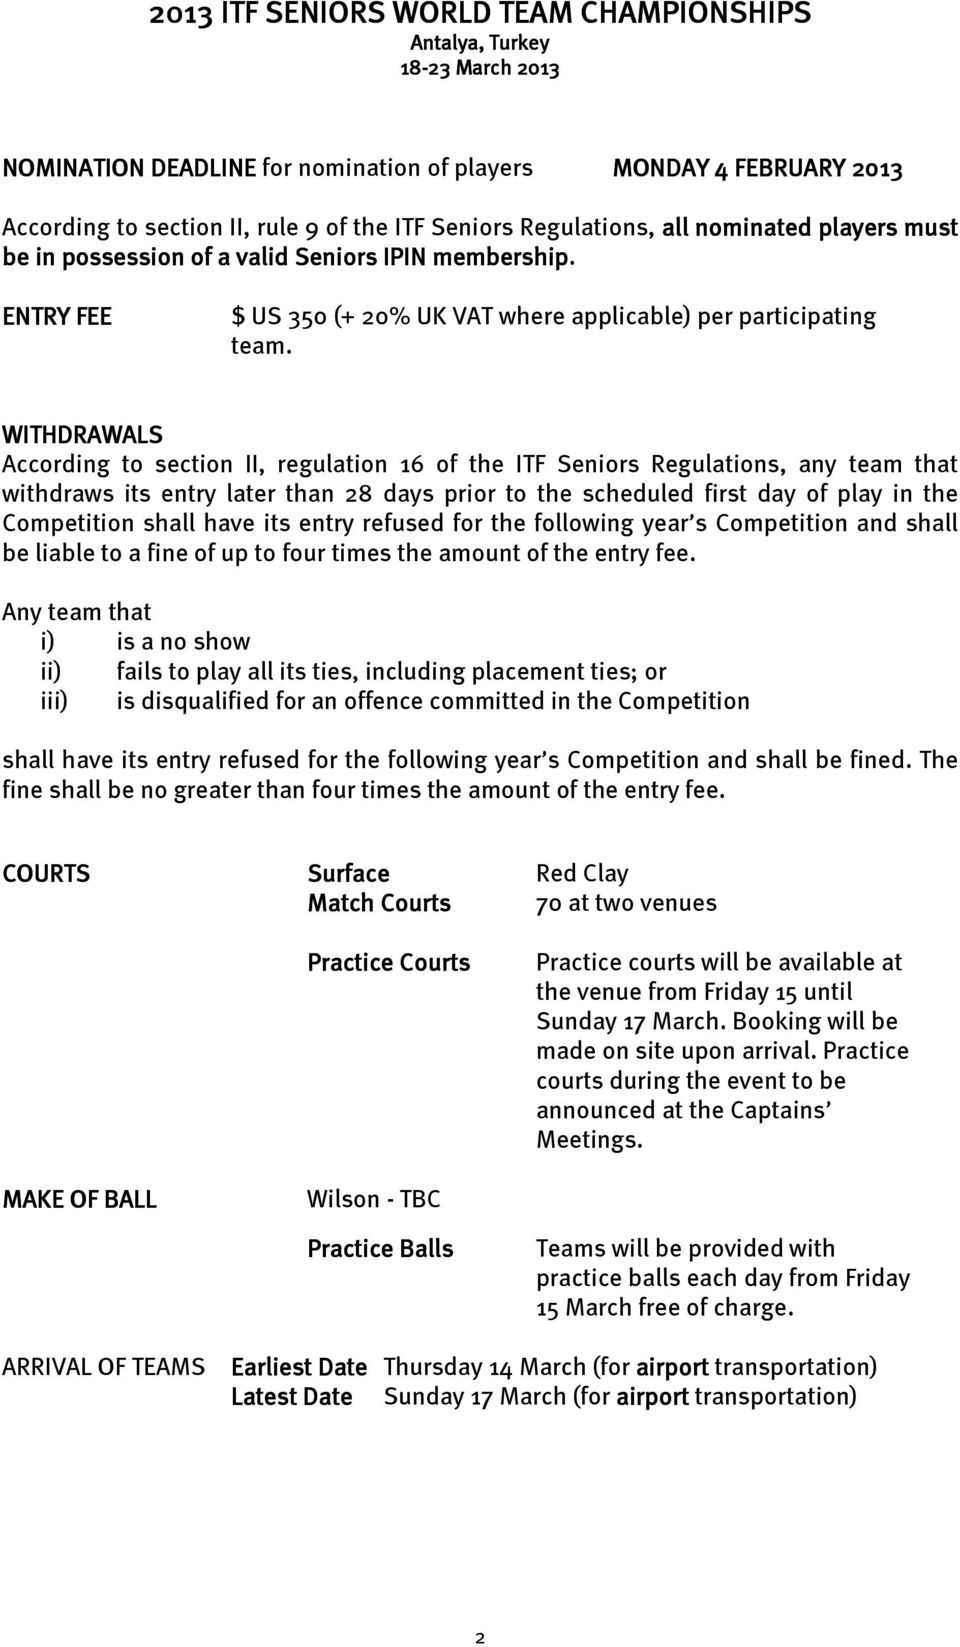 WITHDRAWALS According to section II, regulation 16 of the ITF Seniors Regulations, any team that withdraws its entry later than 28 days prior to the scheduled first day of play in the Competition